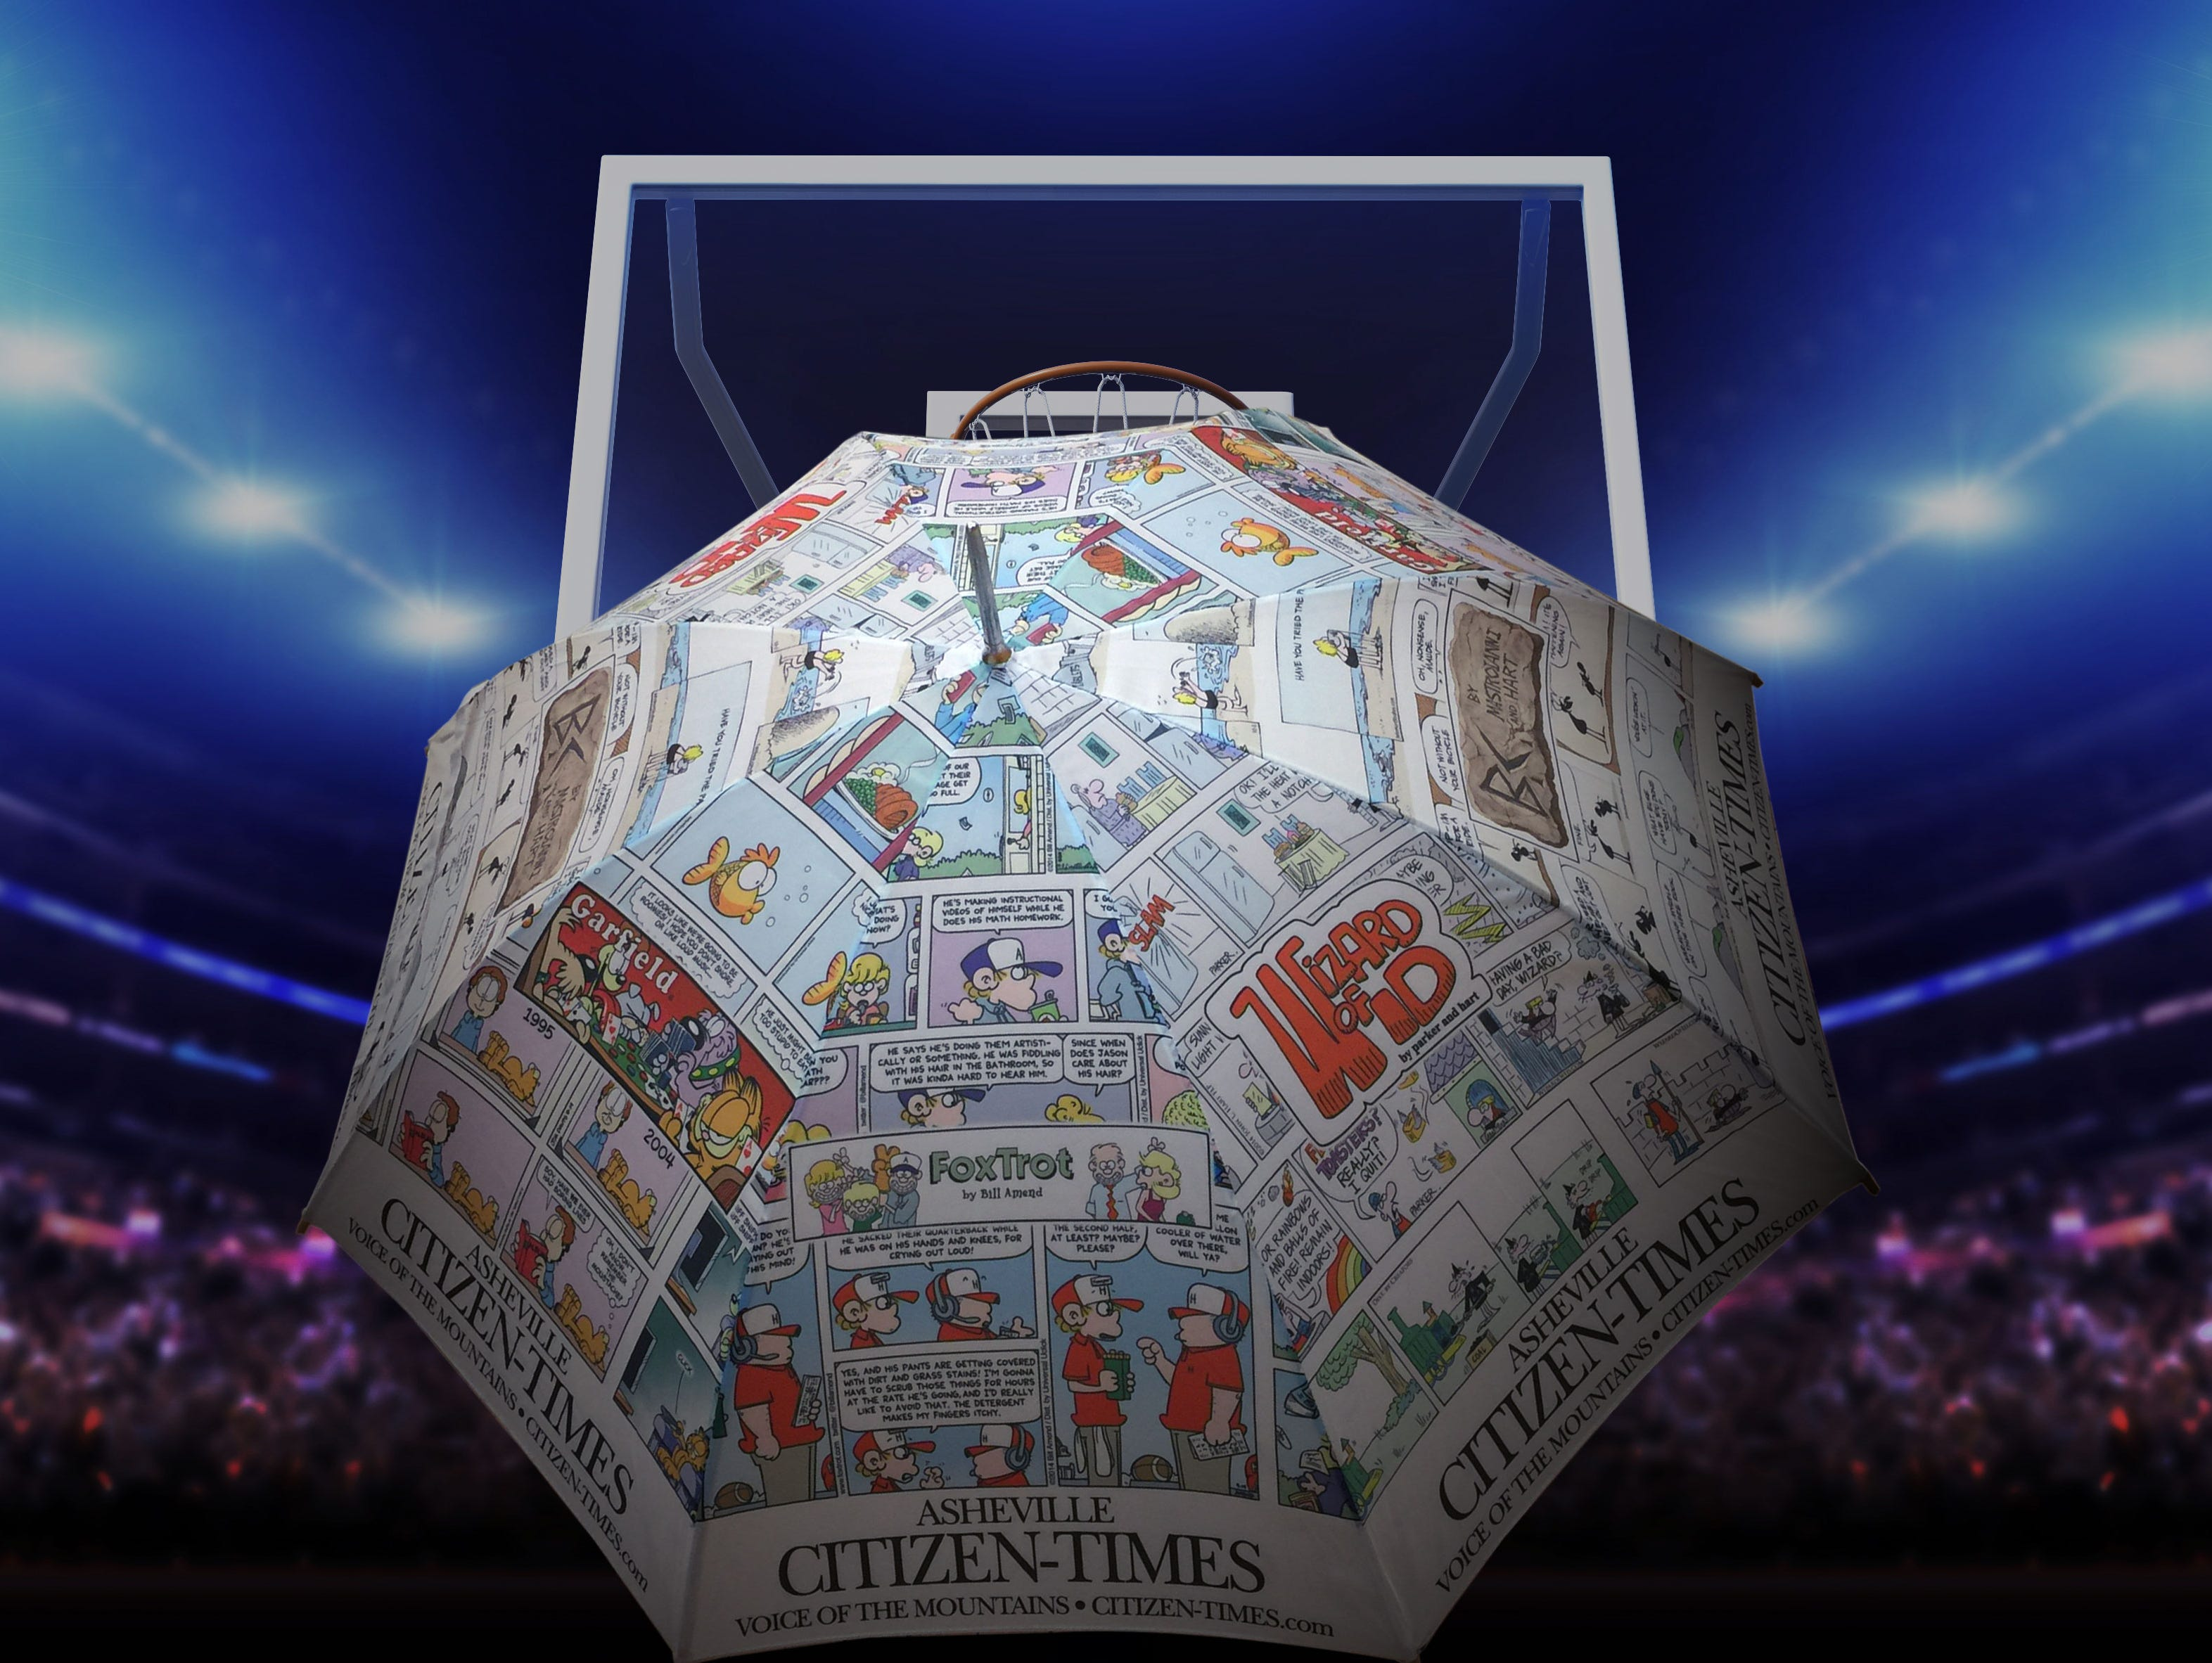 You can now own one of our famous comic umbrellas! Claim your FREE umbrella before they run out!